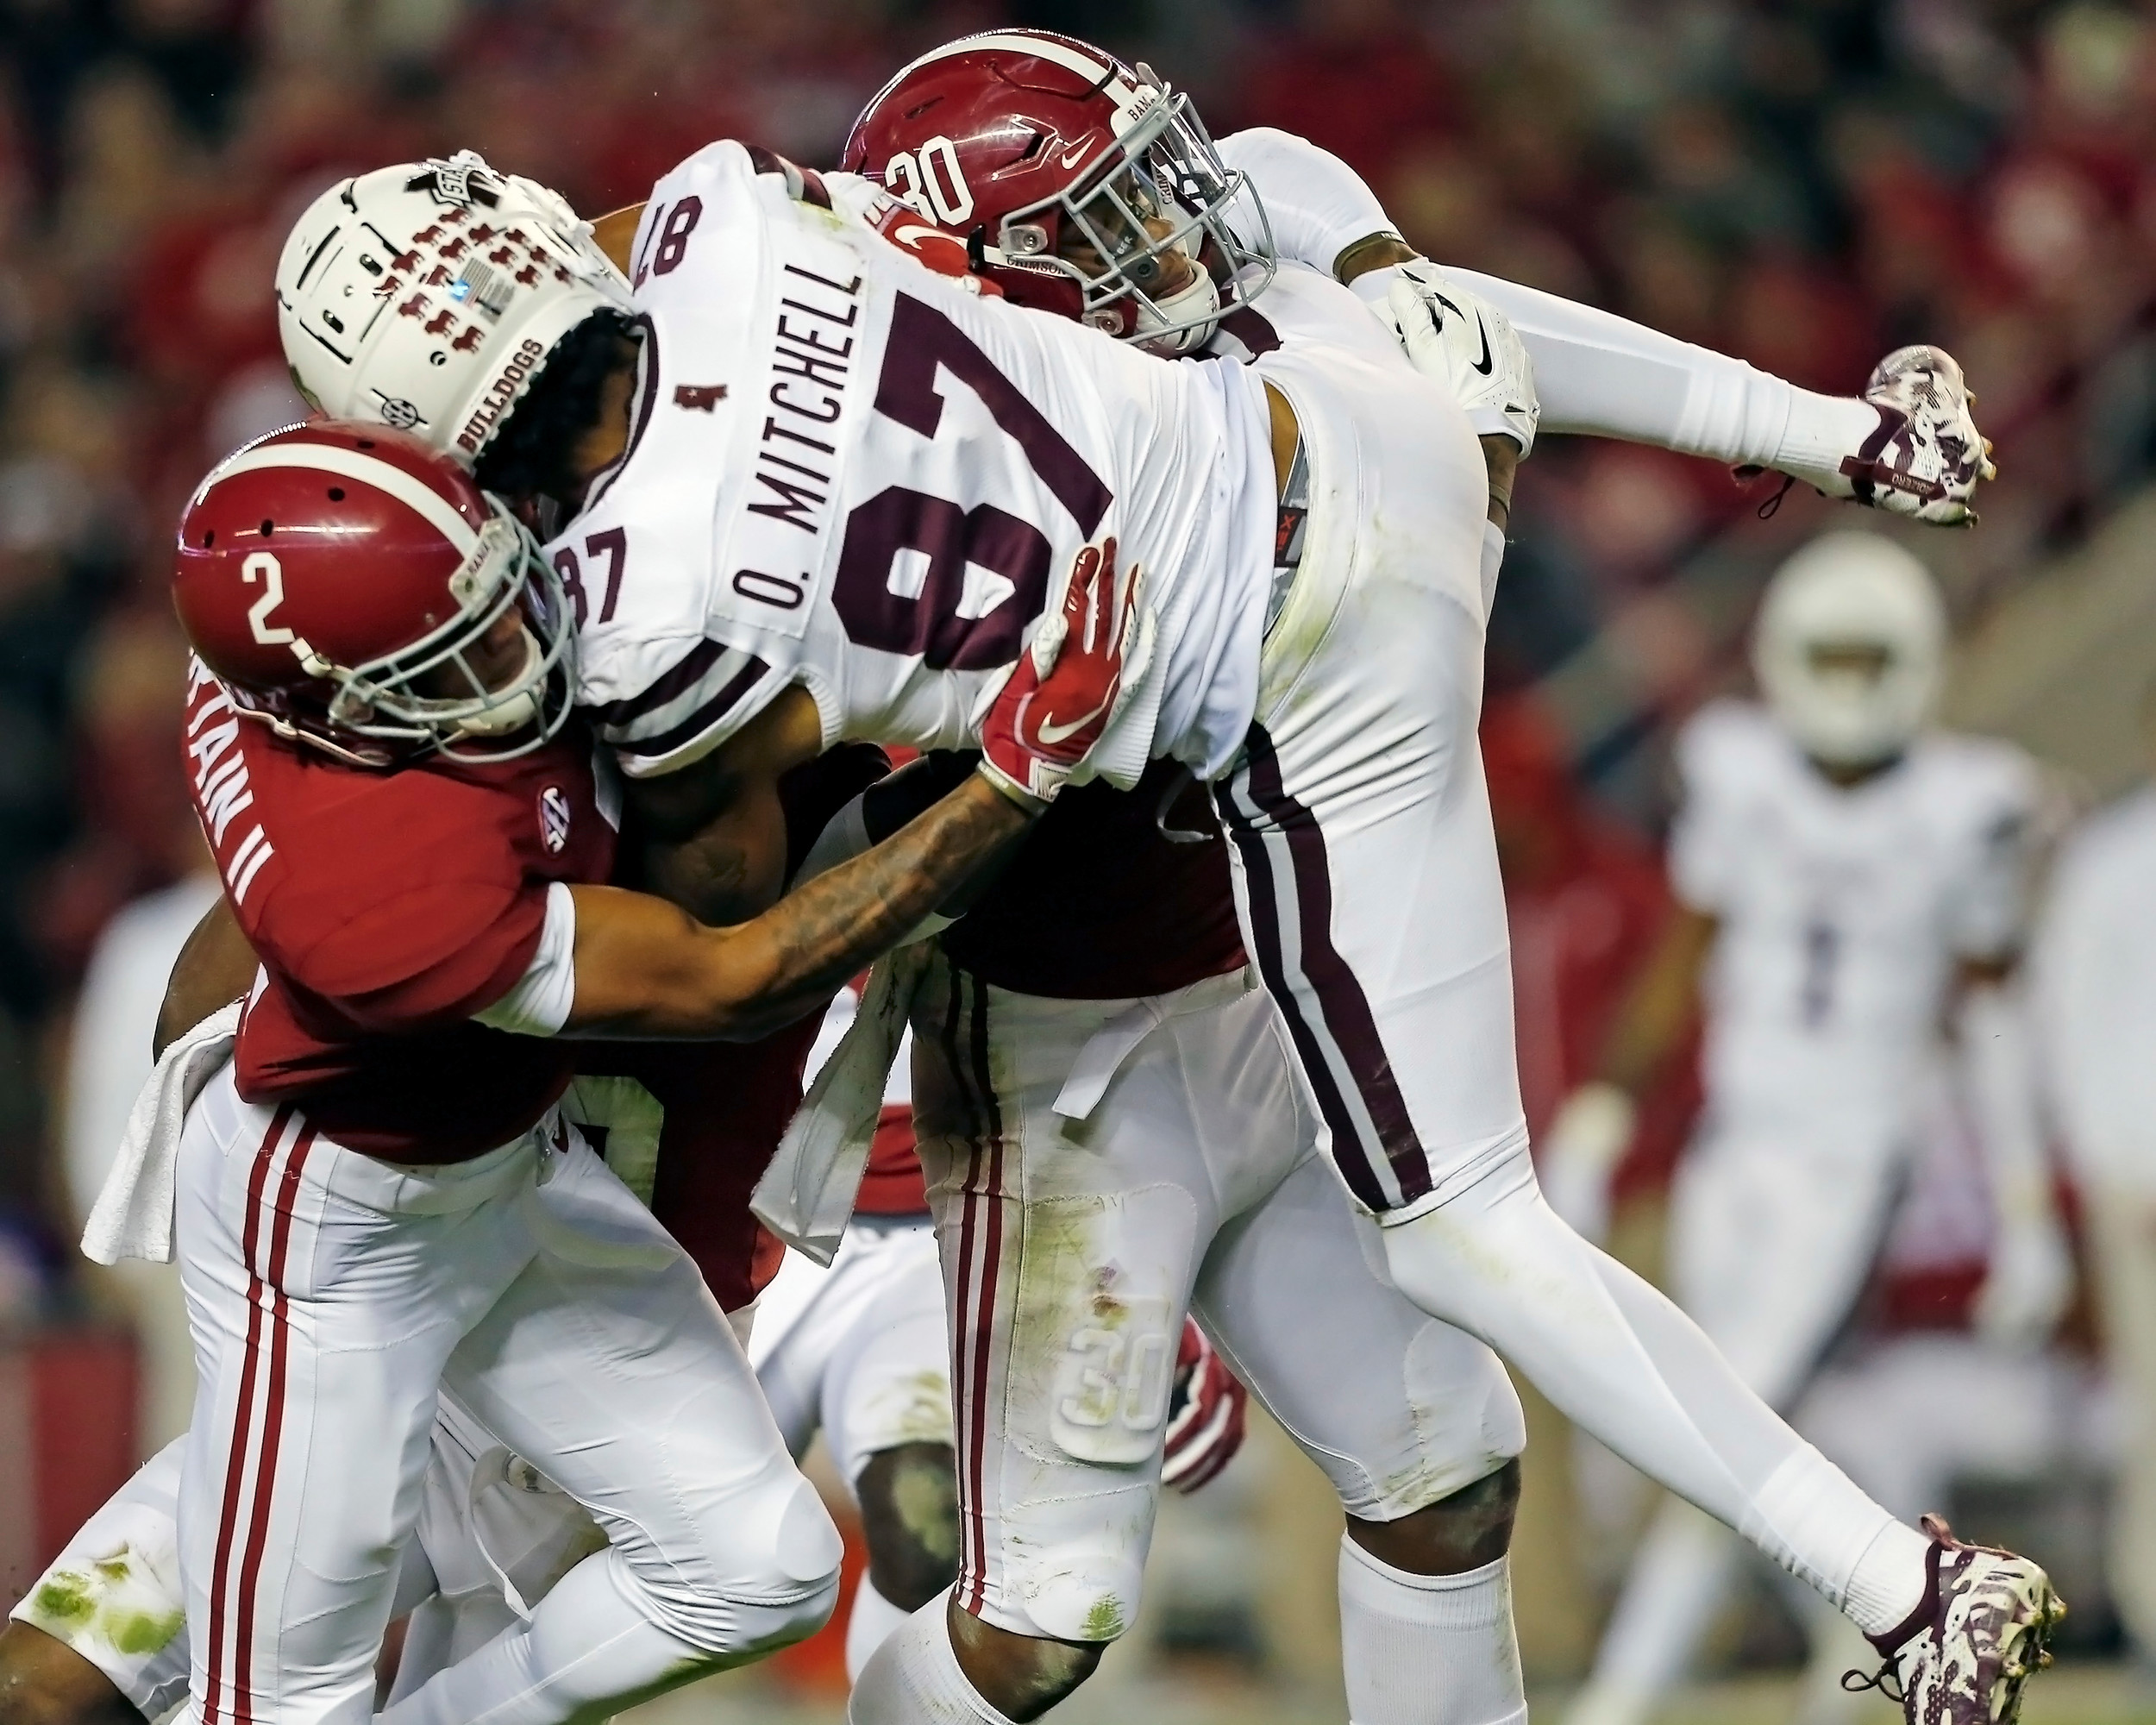 Mississippi State Bulldogs wide receiver Osirus Mitchell (87) was helpless when Alabama Crimson Tide defensive back Patrick Surtain II (2) and linebacker Mack Wilson (30) got a hold of him during the second half of the game between Mississippi State and the University of Alabama at Bryant-Denny Stadium in Tuscaloosa, Al. Credit: Jason Clark / Daily Mountain Eagle